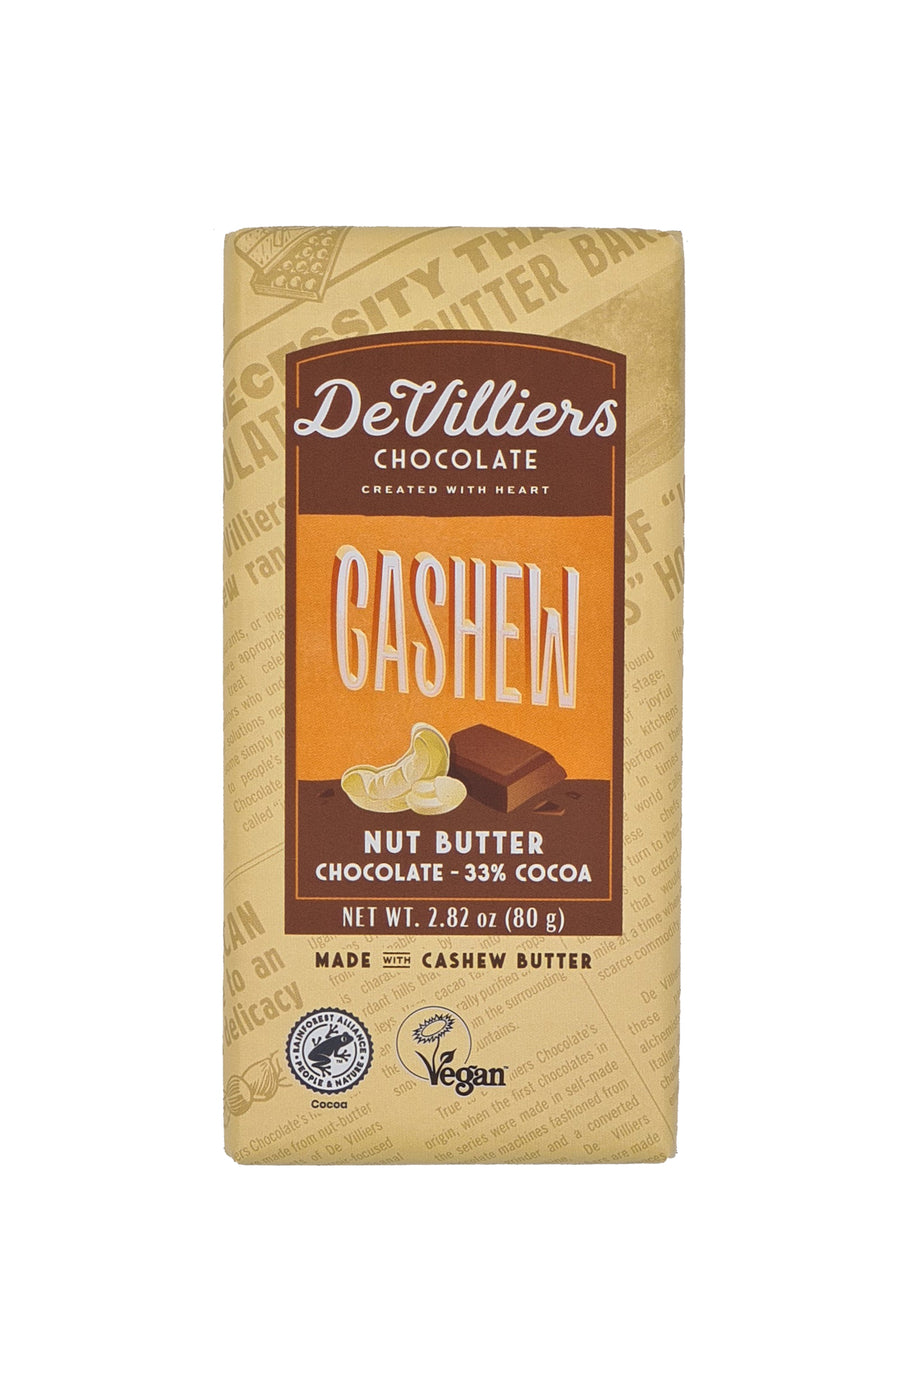 NUT BUTTER CHOCOLATE BAR COMBINATION - PACK OF 6 BARS OF 2.82 OUNCE EACH - de villiers chocolate us